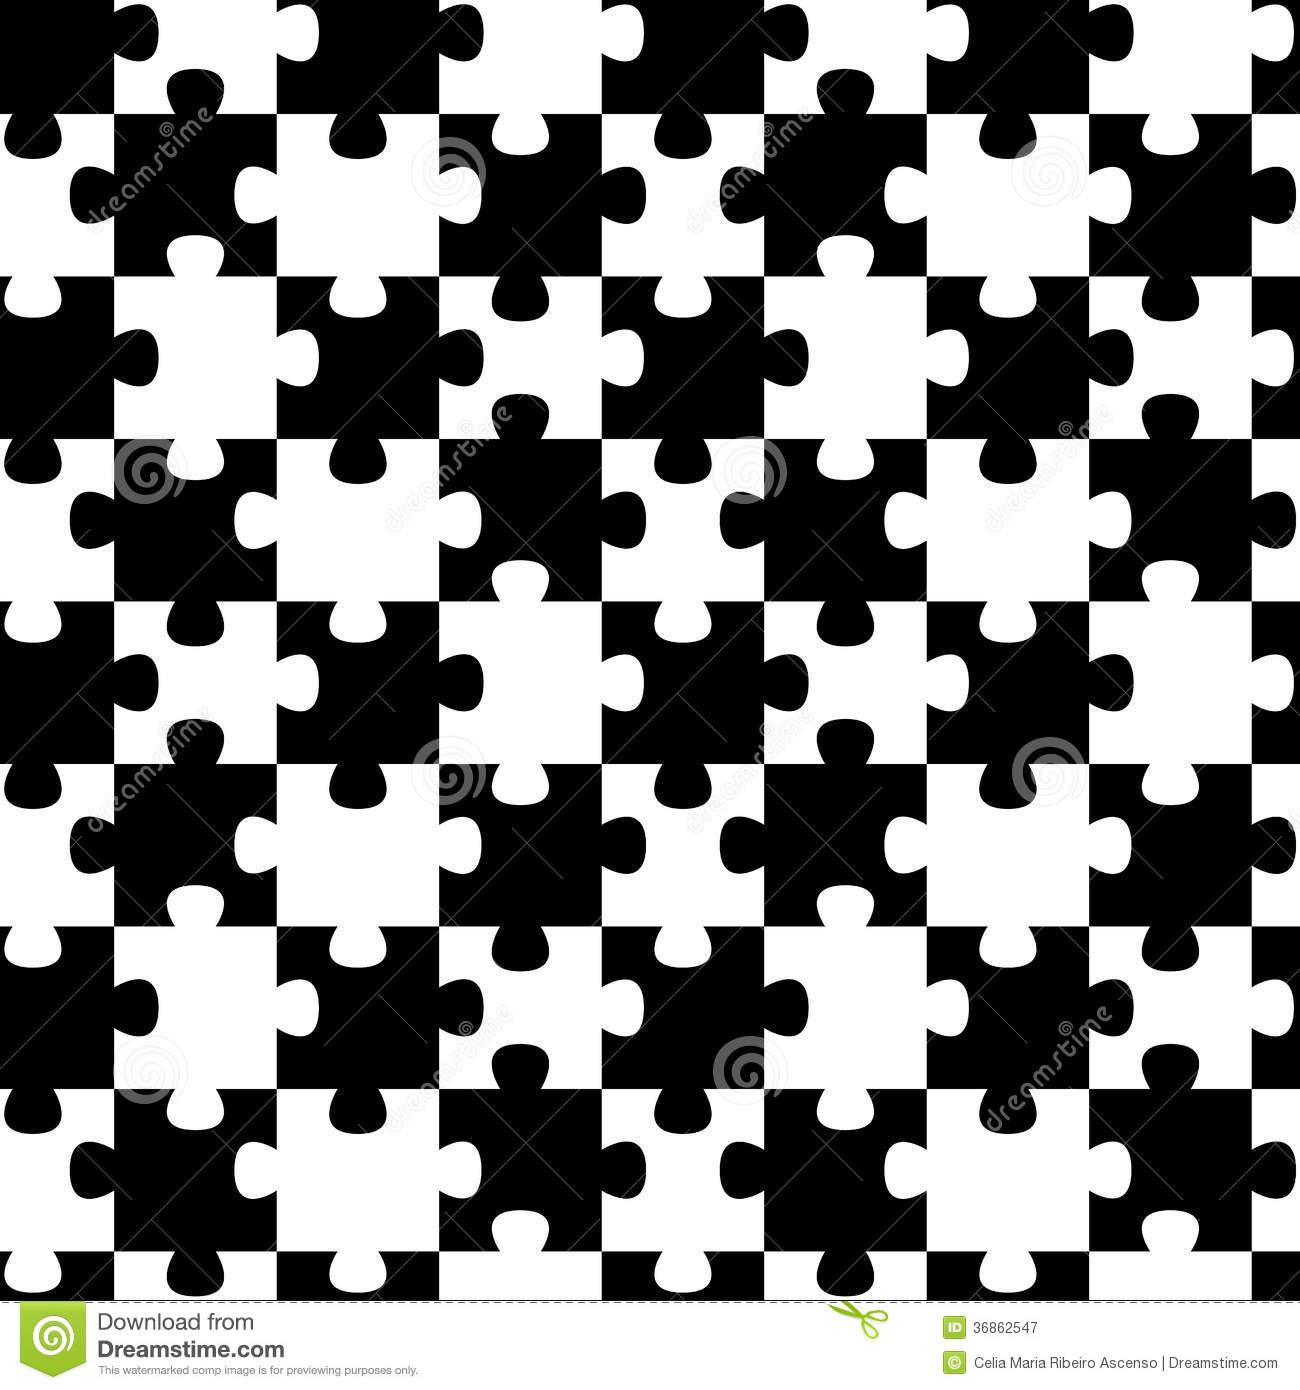 Jigsaw Puzzle Pieces Seamless Background Pattern Royalty-Free Stock ...